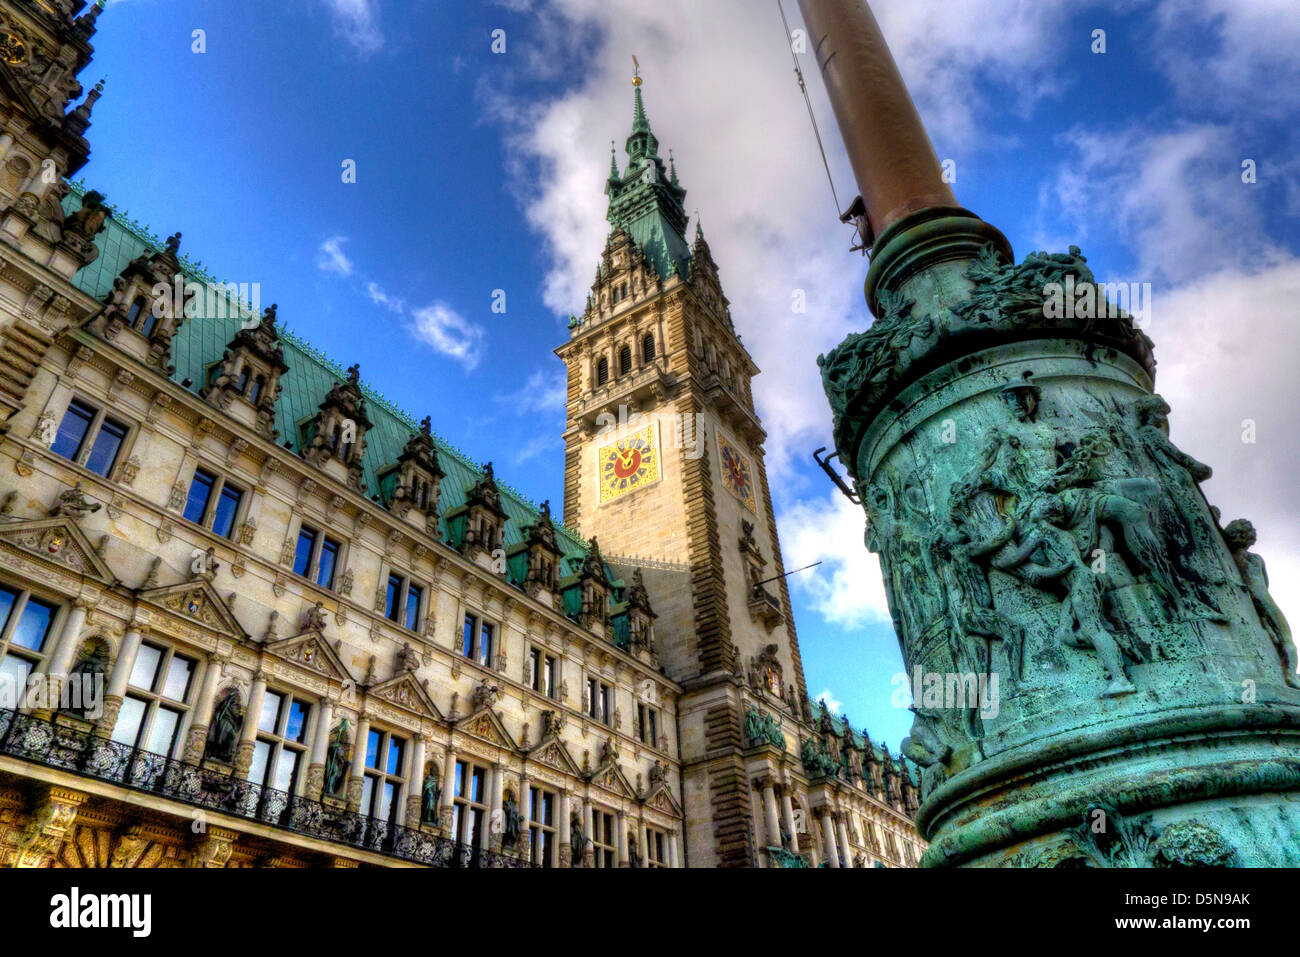 The Rathaus, or town hall, in Hamburg, northern Germany. - Stock Image